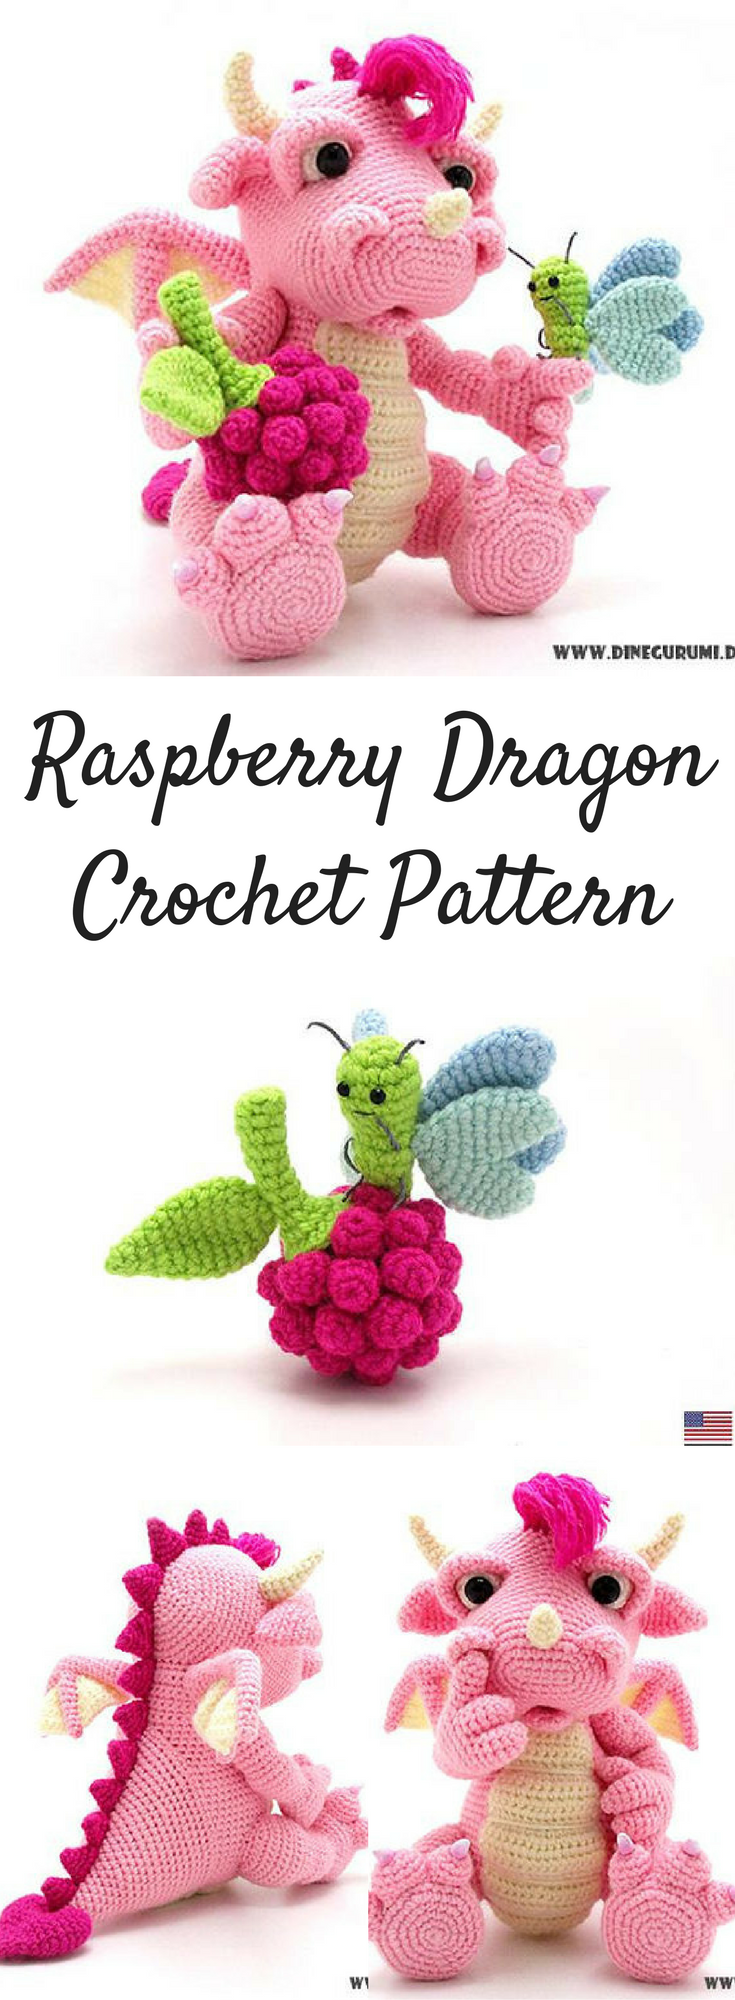 Raspberry Dragon Amigurumi Crochet Pattern Printable #ad #amigurumi ...